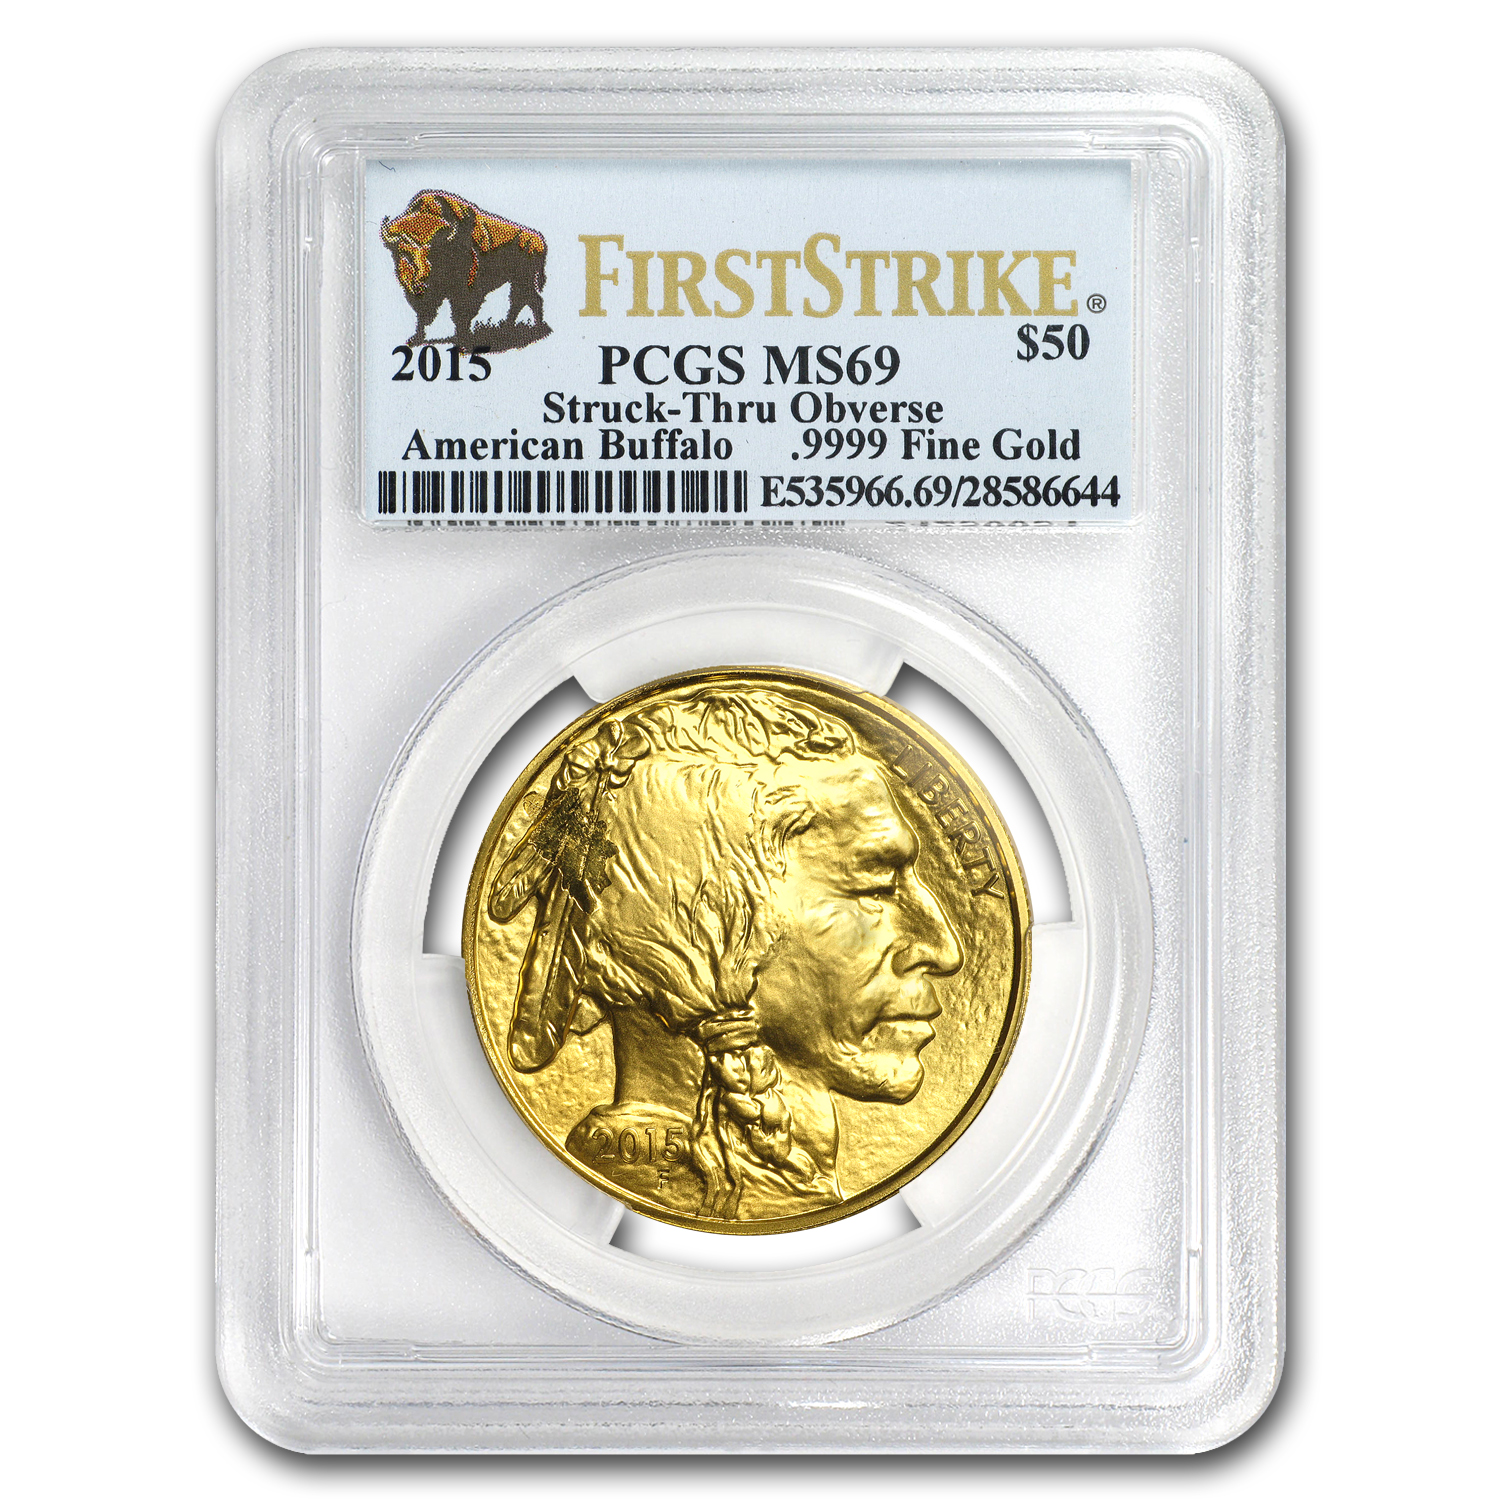 2015 1 oz Gold Buffalo MS-69 PCGS (FS, Obv Struck Thru Error)